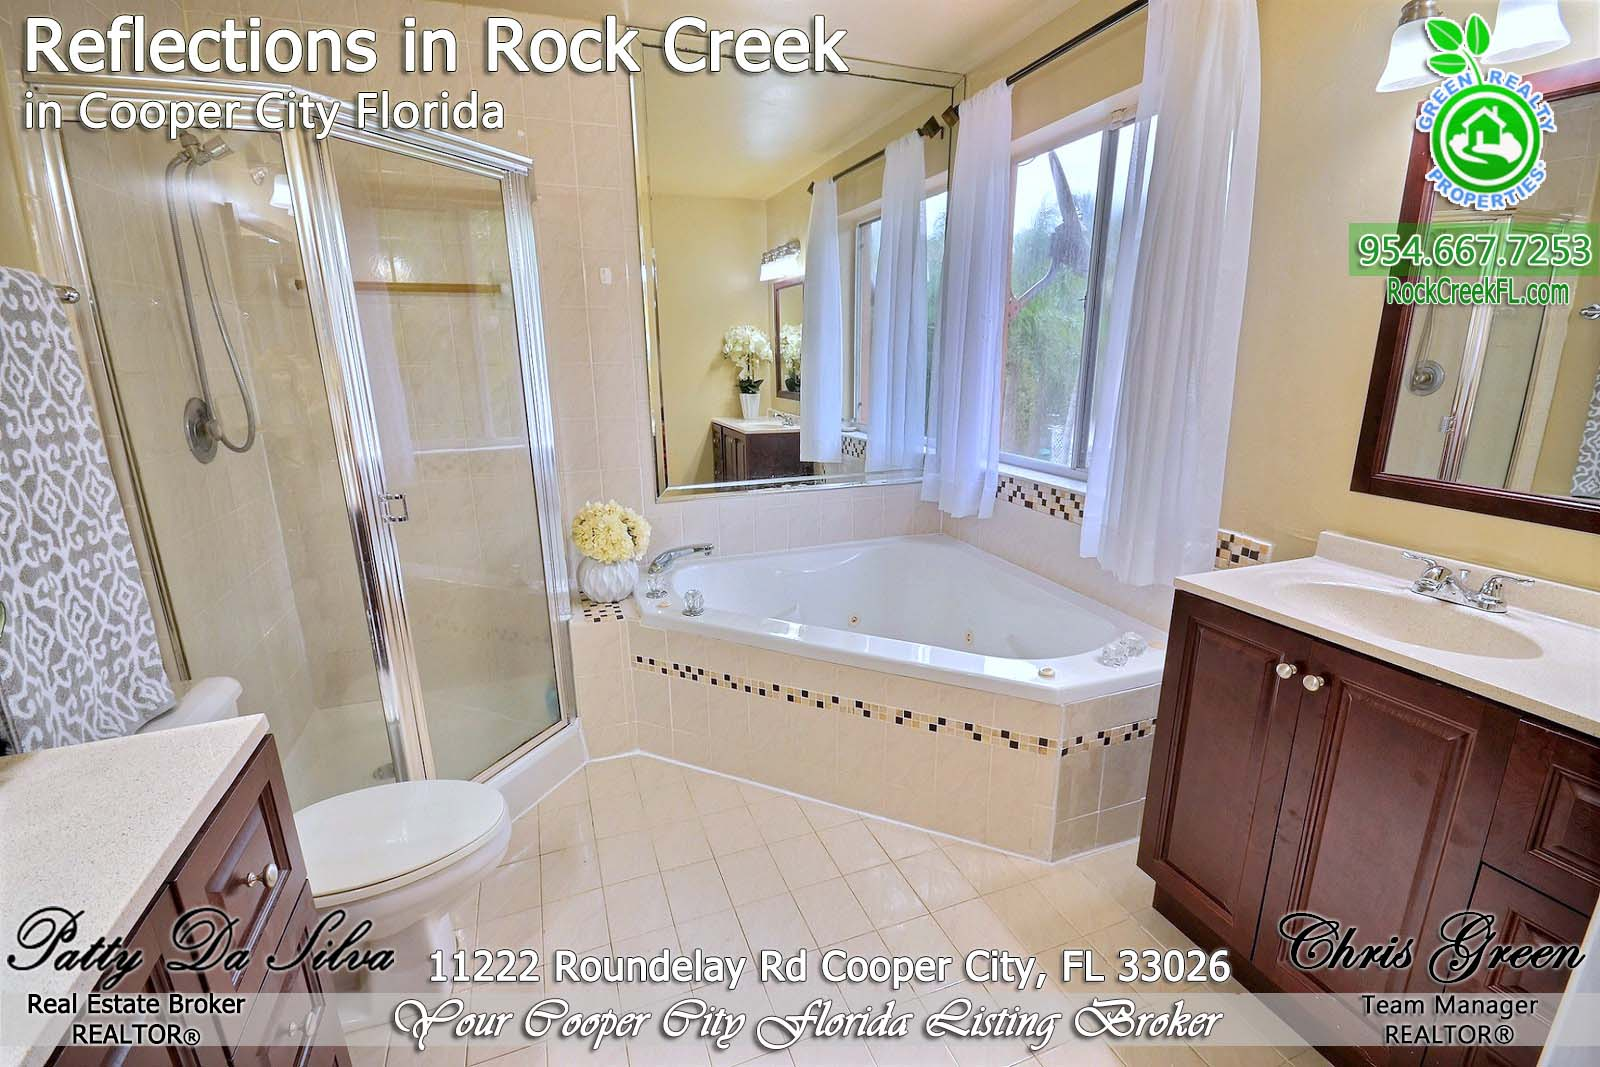 Cooper City Homes For Sale - Reflections in Rock Creek Homes Fo Sale (26)